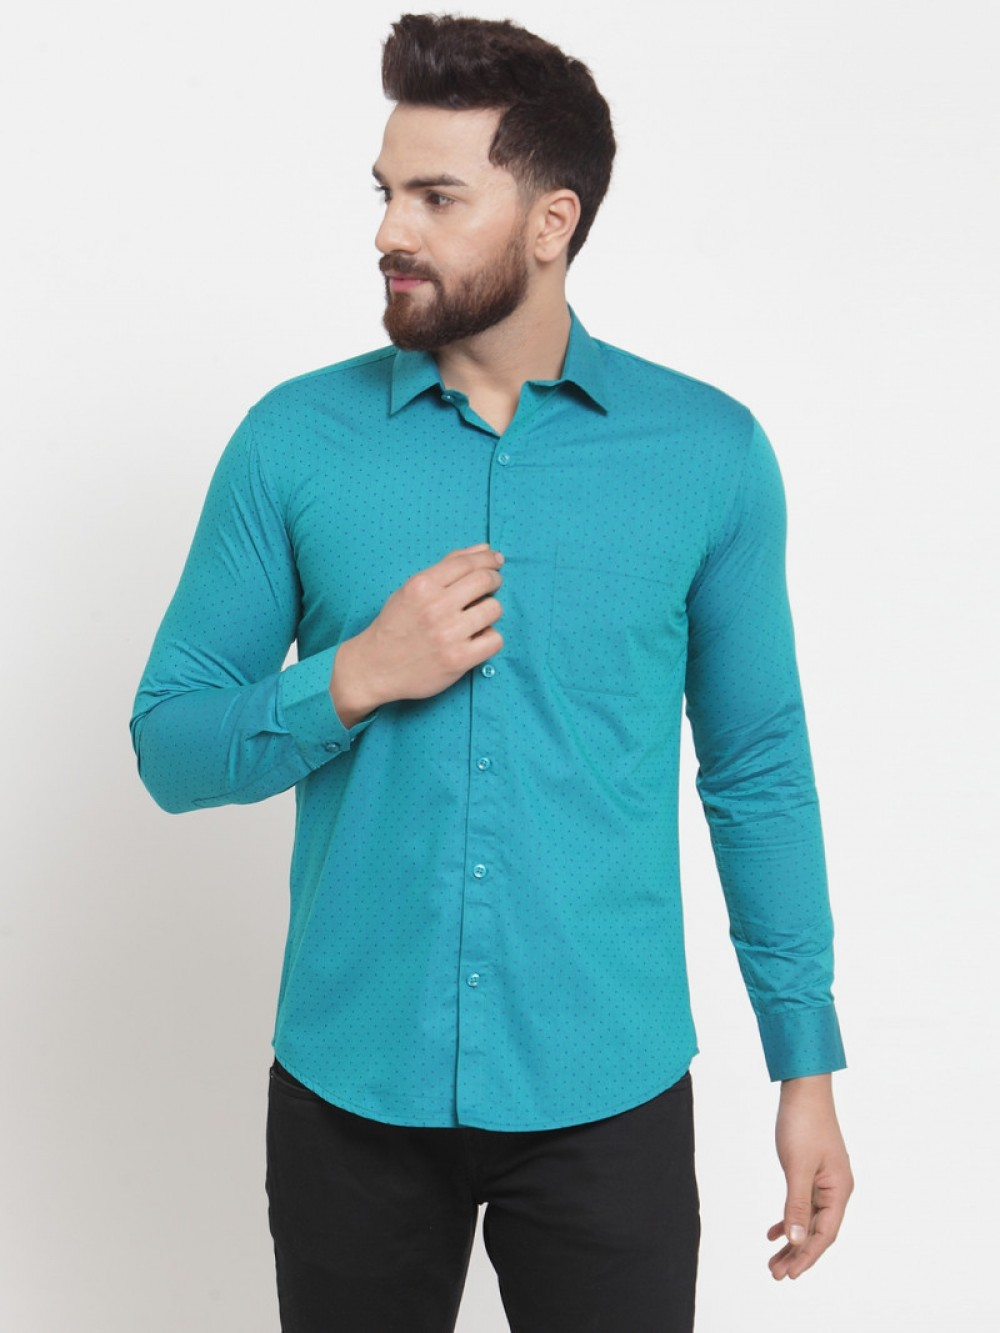 Green Color Full Sleeve Shirt